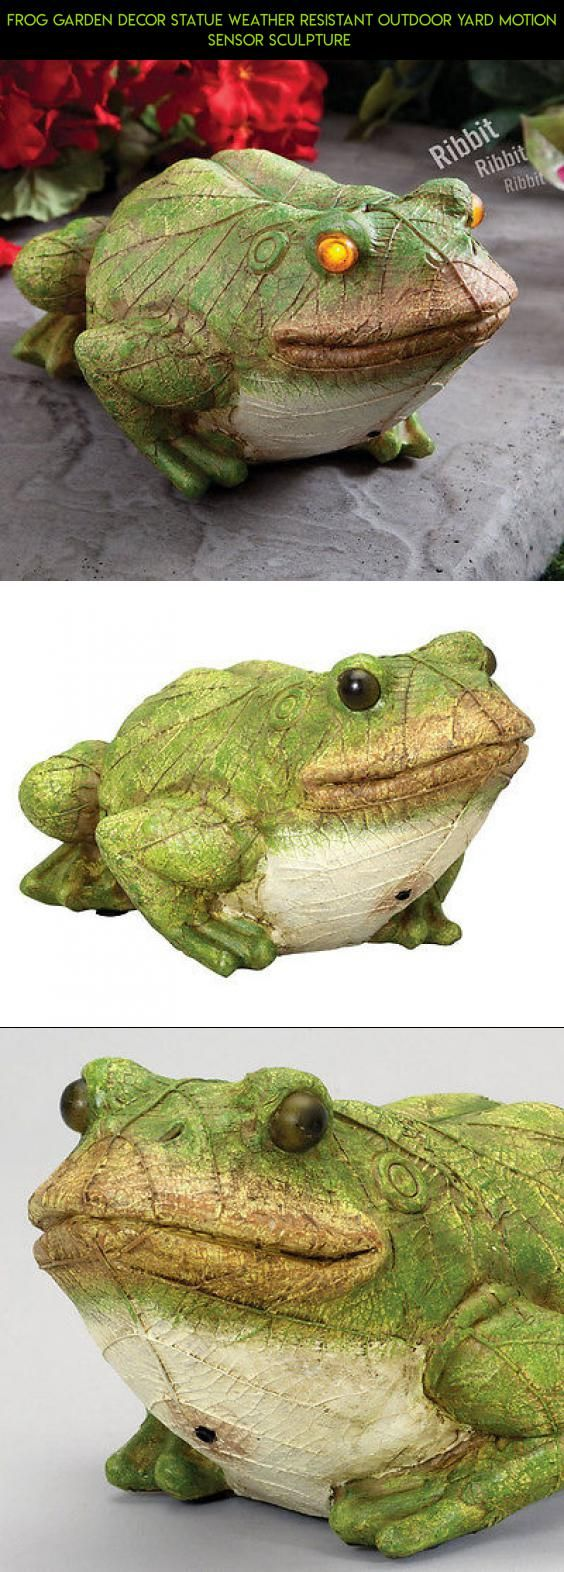 Frog Garden Decor Statue Weather Resistant Outdoor Yard Motion ...